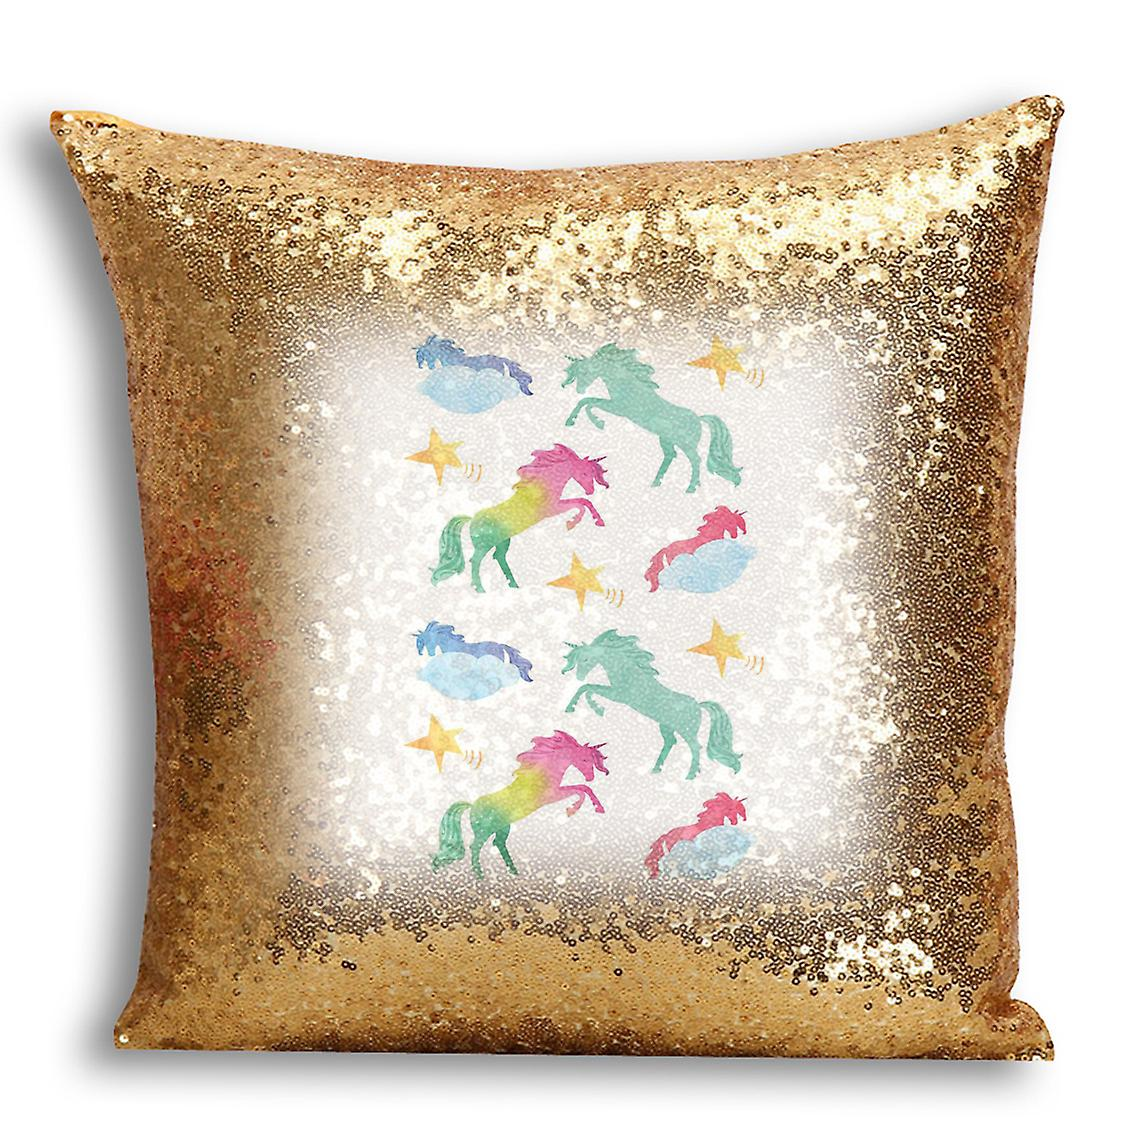 Decor 7 Gold CushionPillow With Printed Home tronixsUnicorn I For Cover Inserted Design Sequin NO0w8vmn